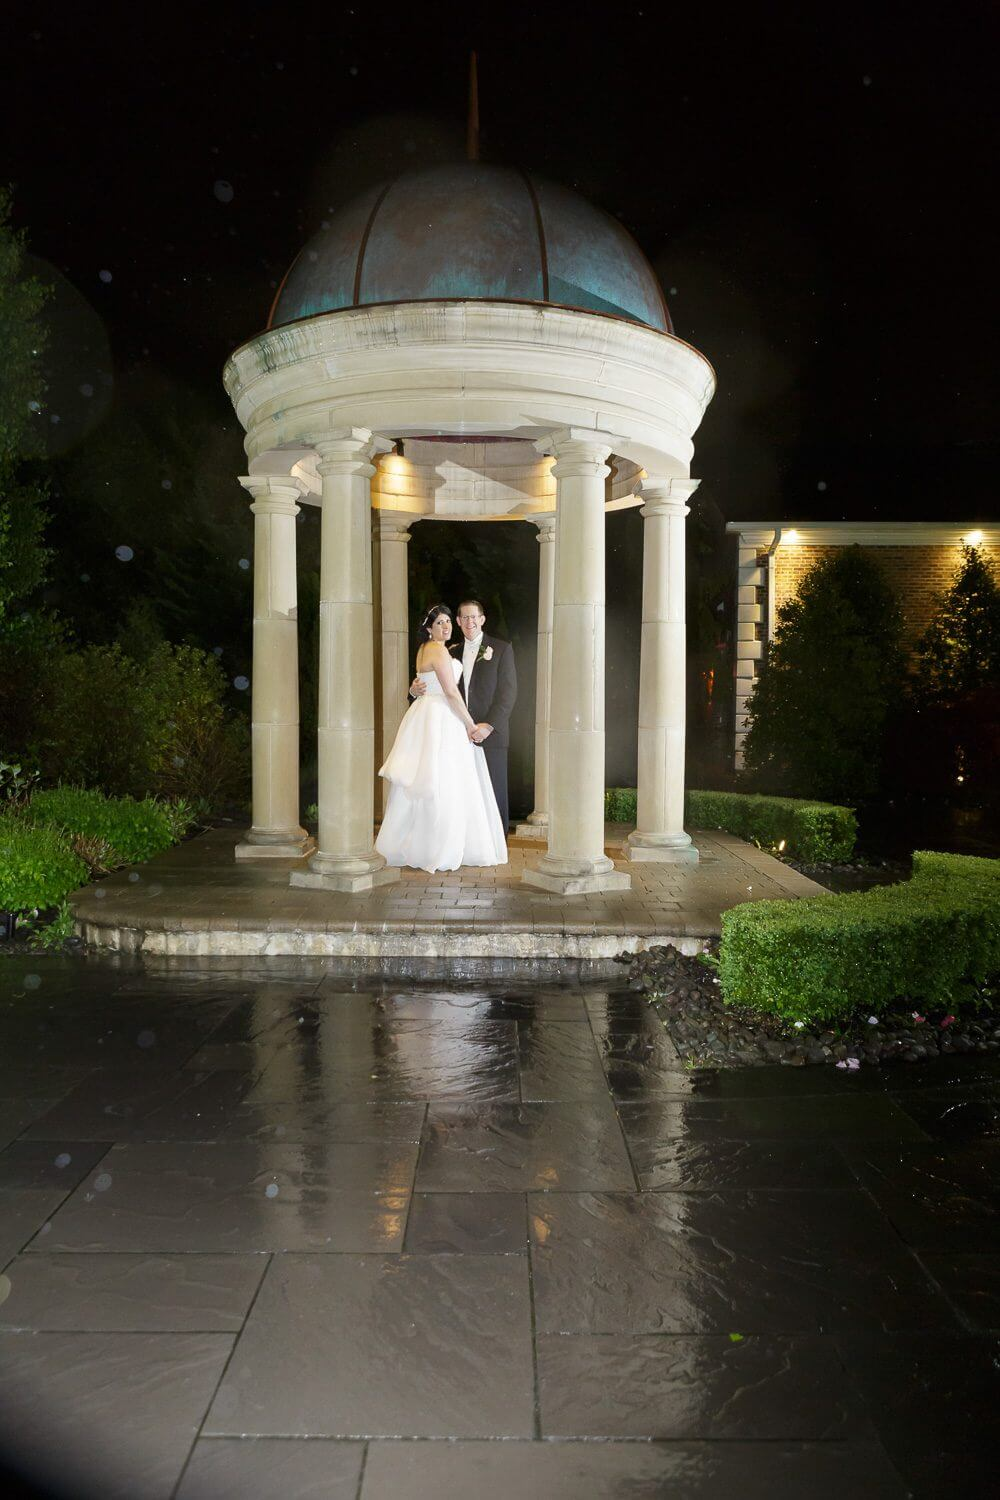 Nightime photo of the bride and groom on a rainy night at the rockleigh Country Club New Jersey Wedding Photography